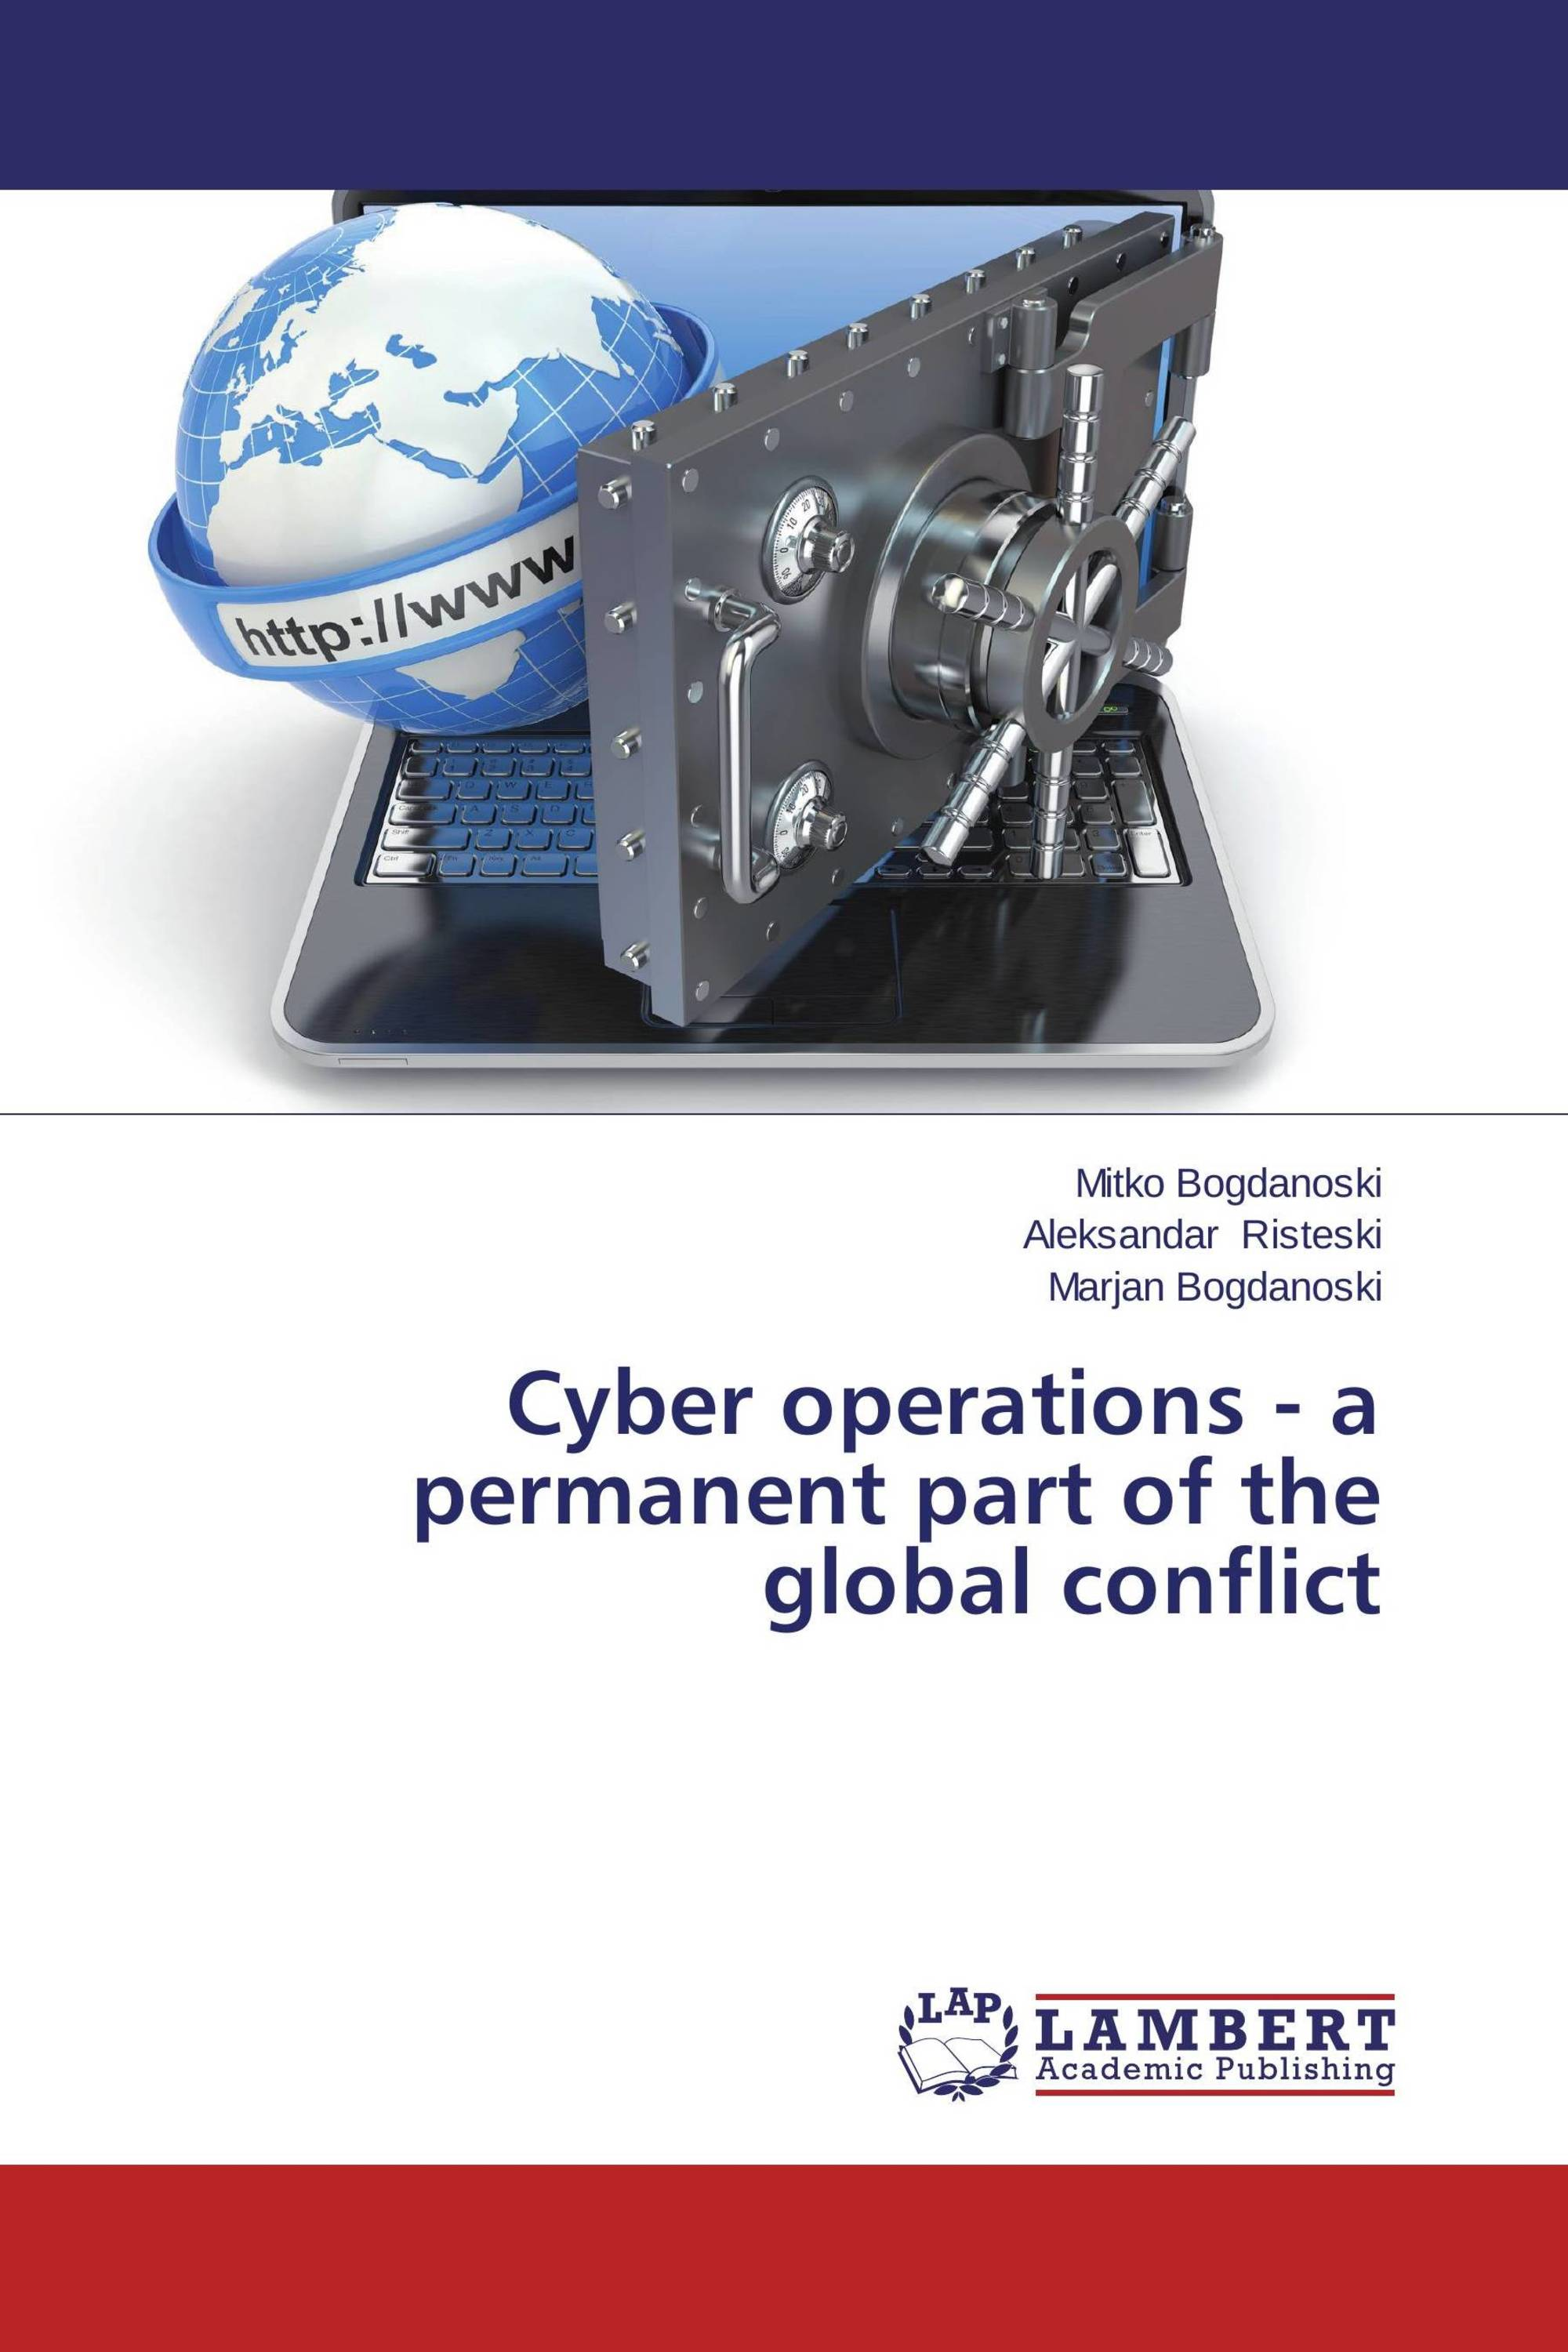 Cyber operations - a permanent part of the global conflict